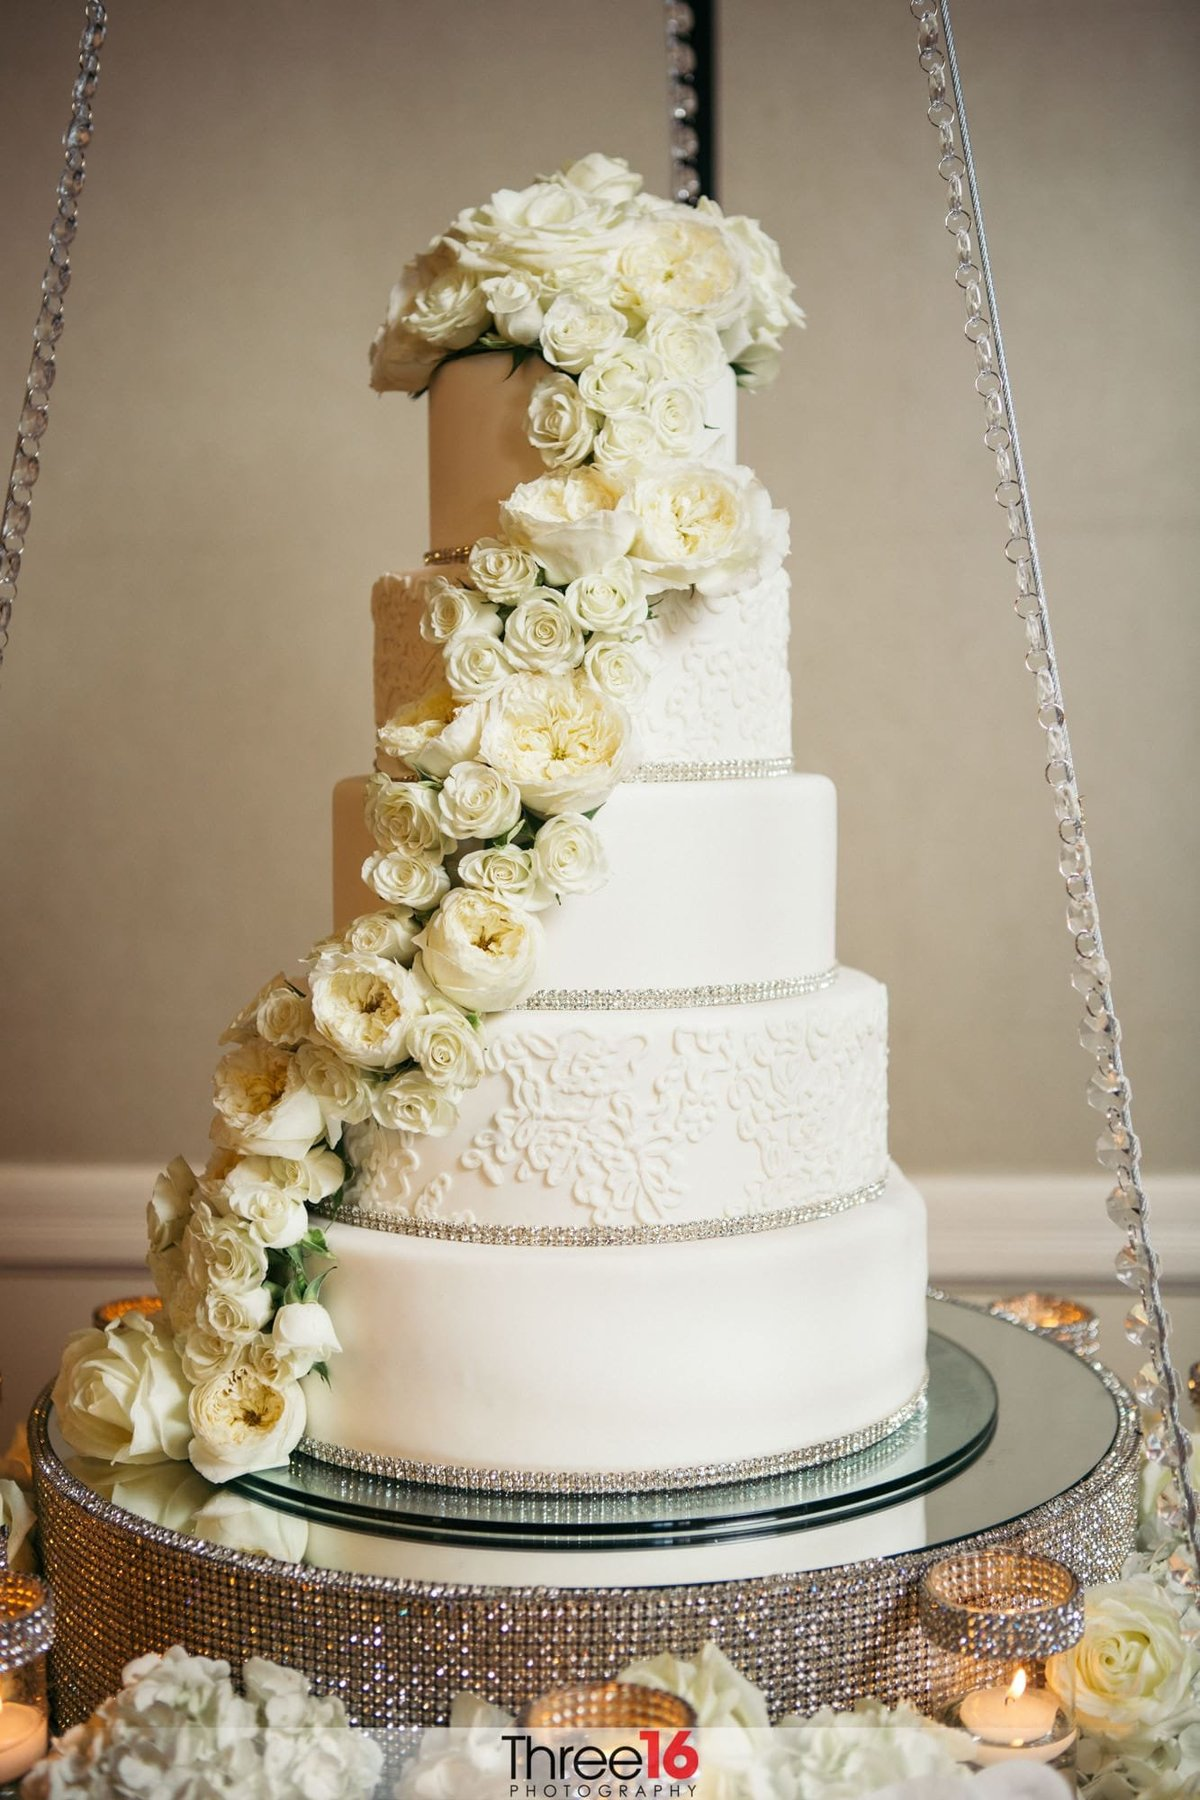 White 5-tiered wedding cake with flowers draped along the side